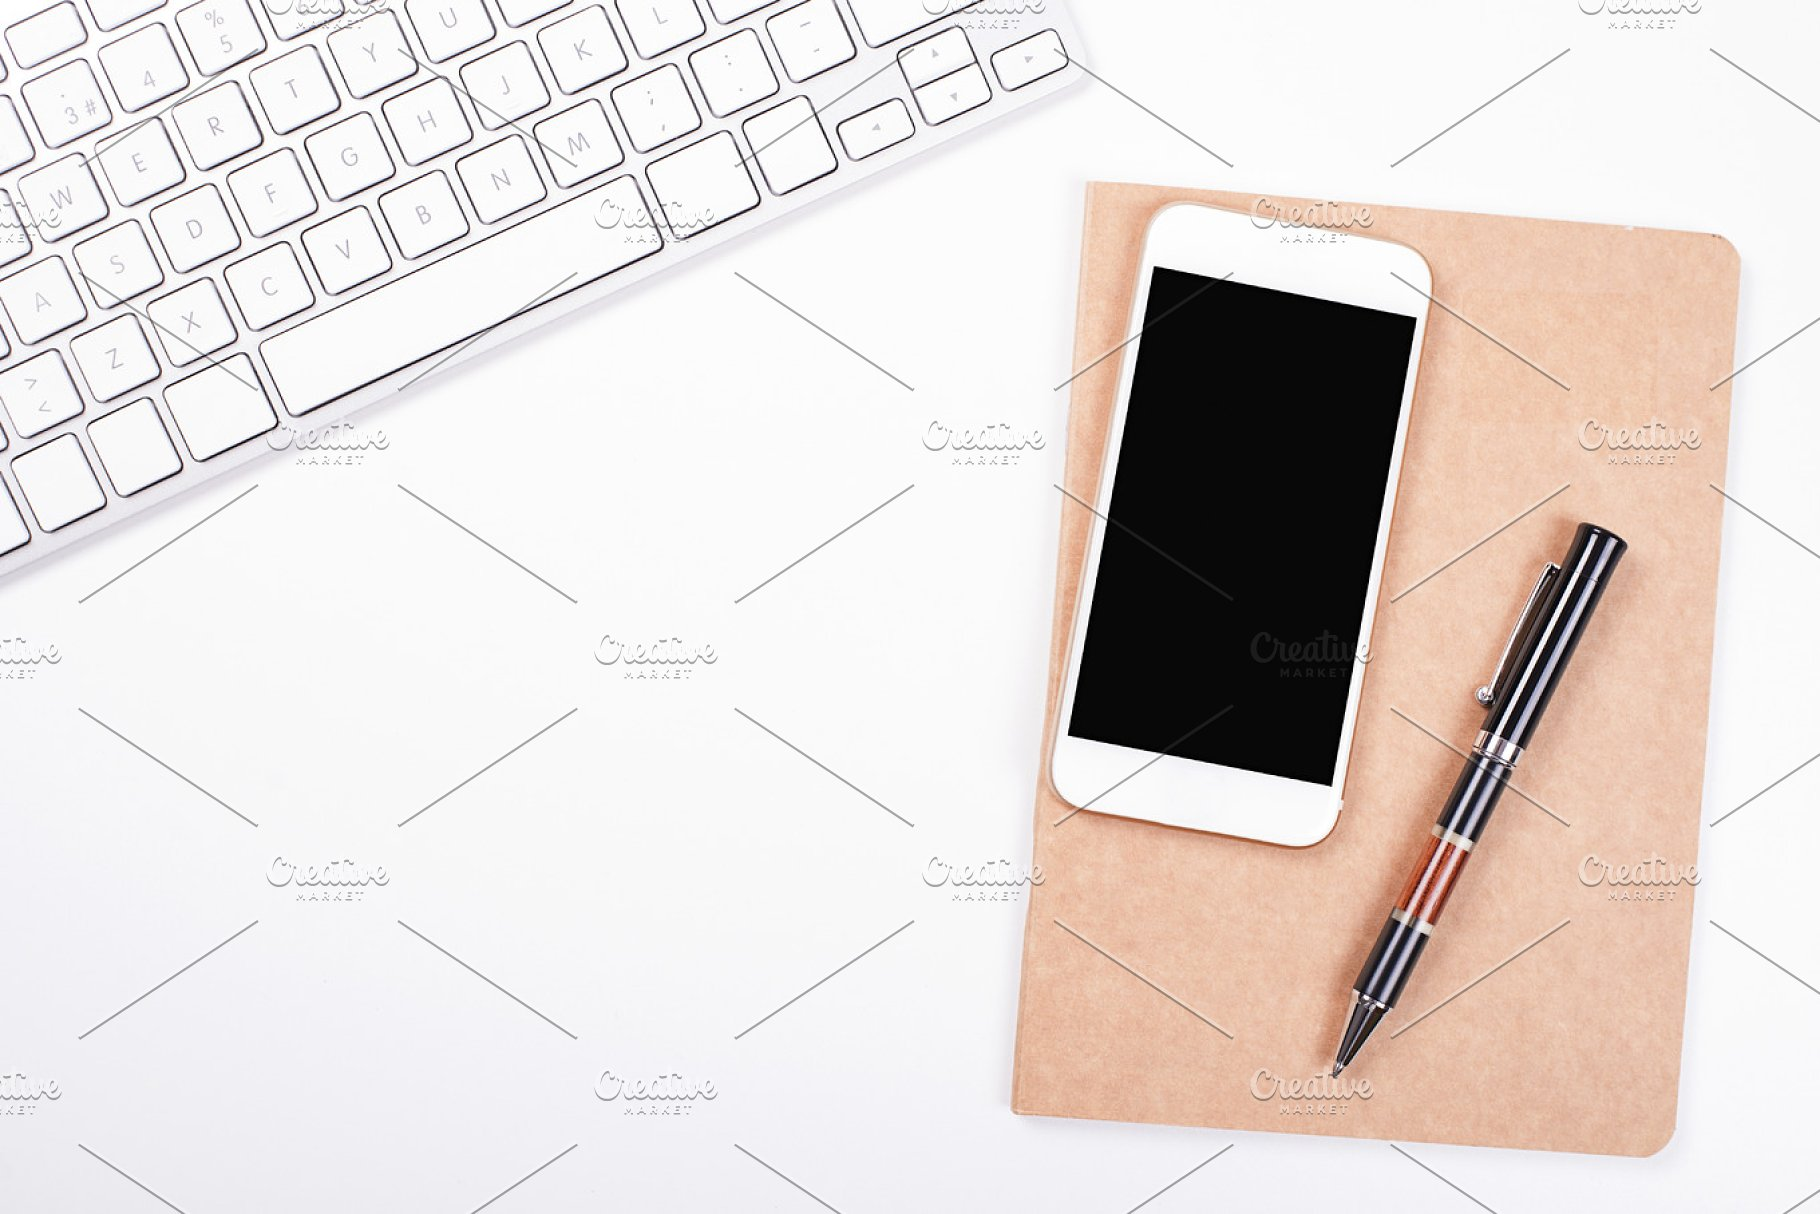 Top view of smartphone and computer keyboard next to notebook and pen on  white background  Isolated